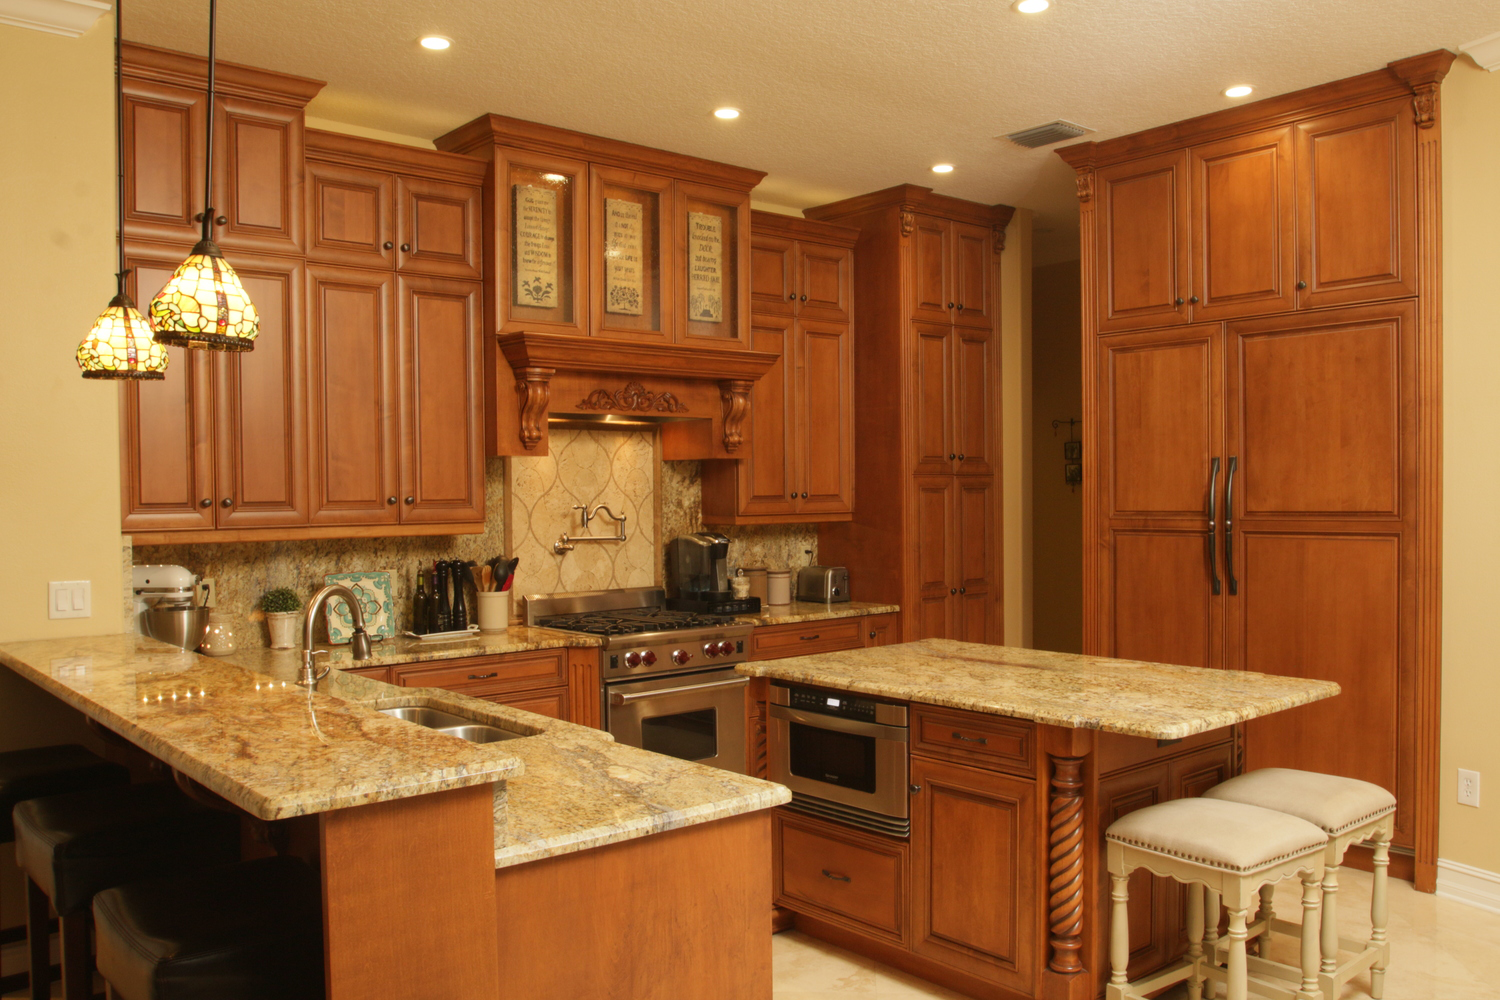 custom-kitchen-cabinets-after.png